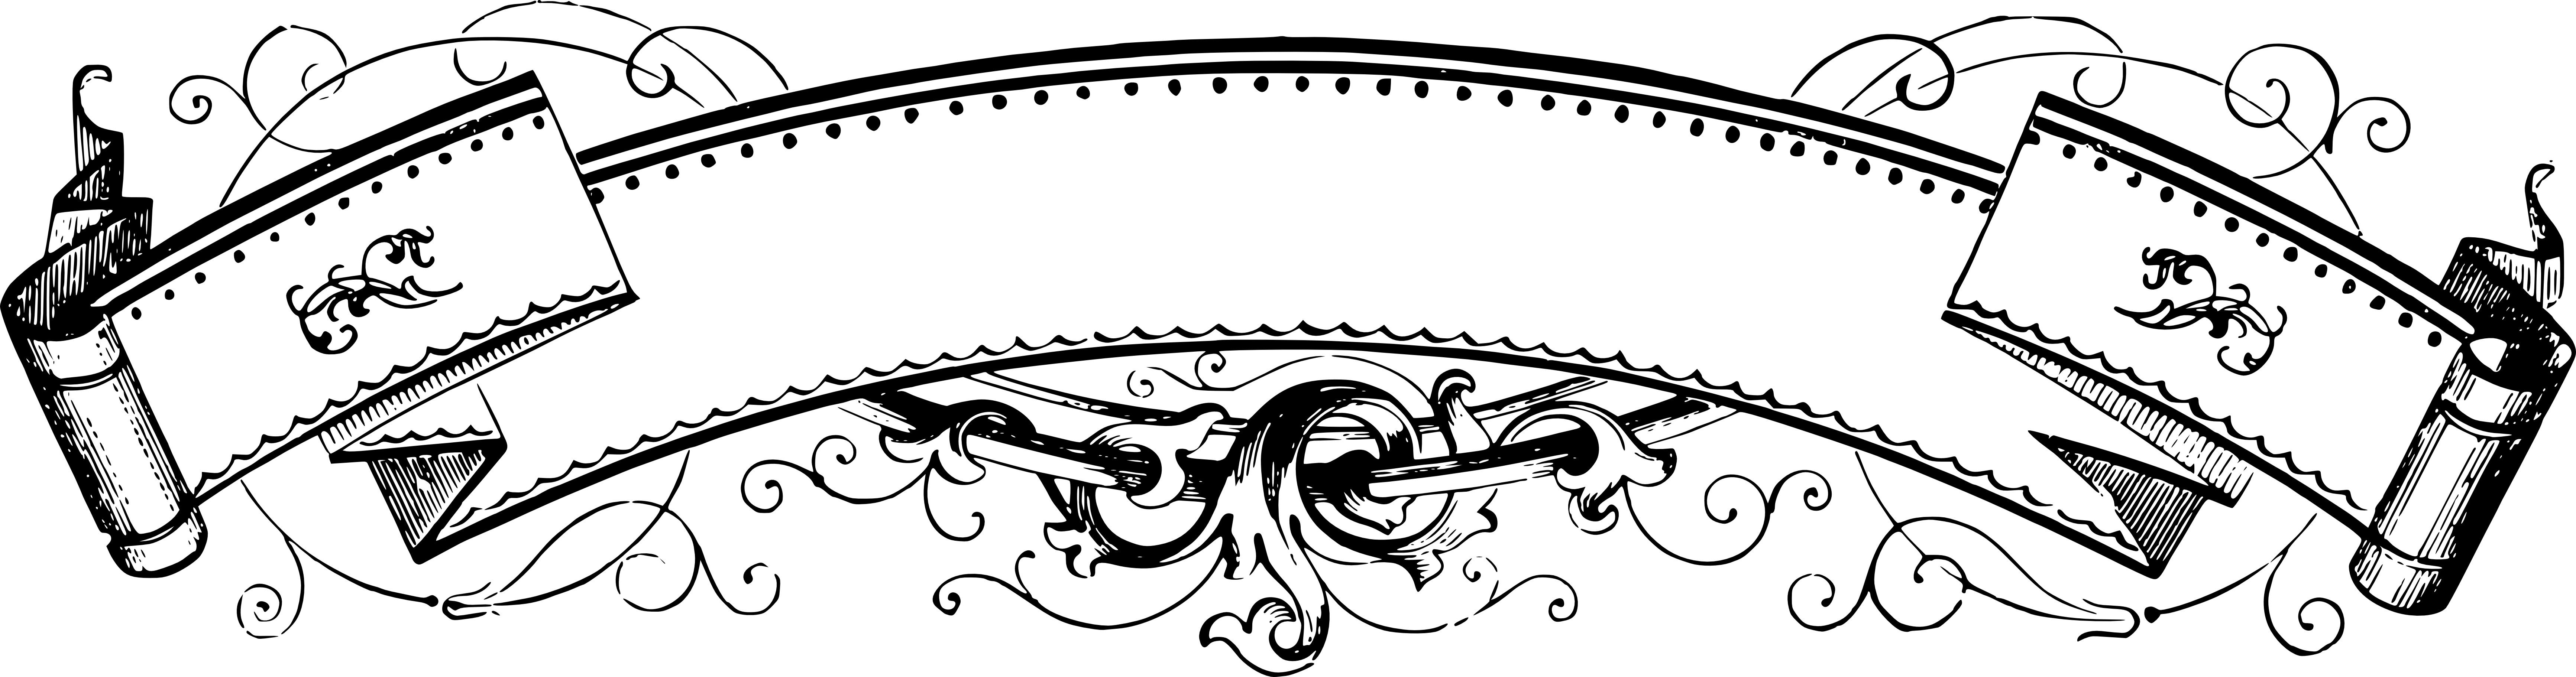 Banners clipart victorian. Ribbon pencil and in